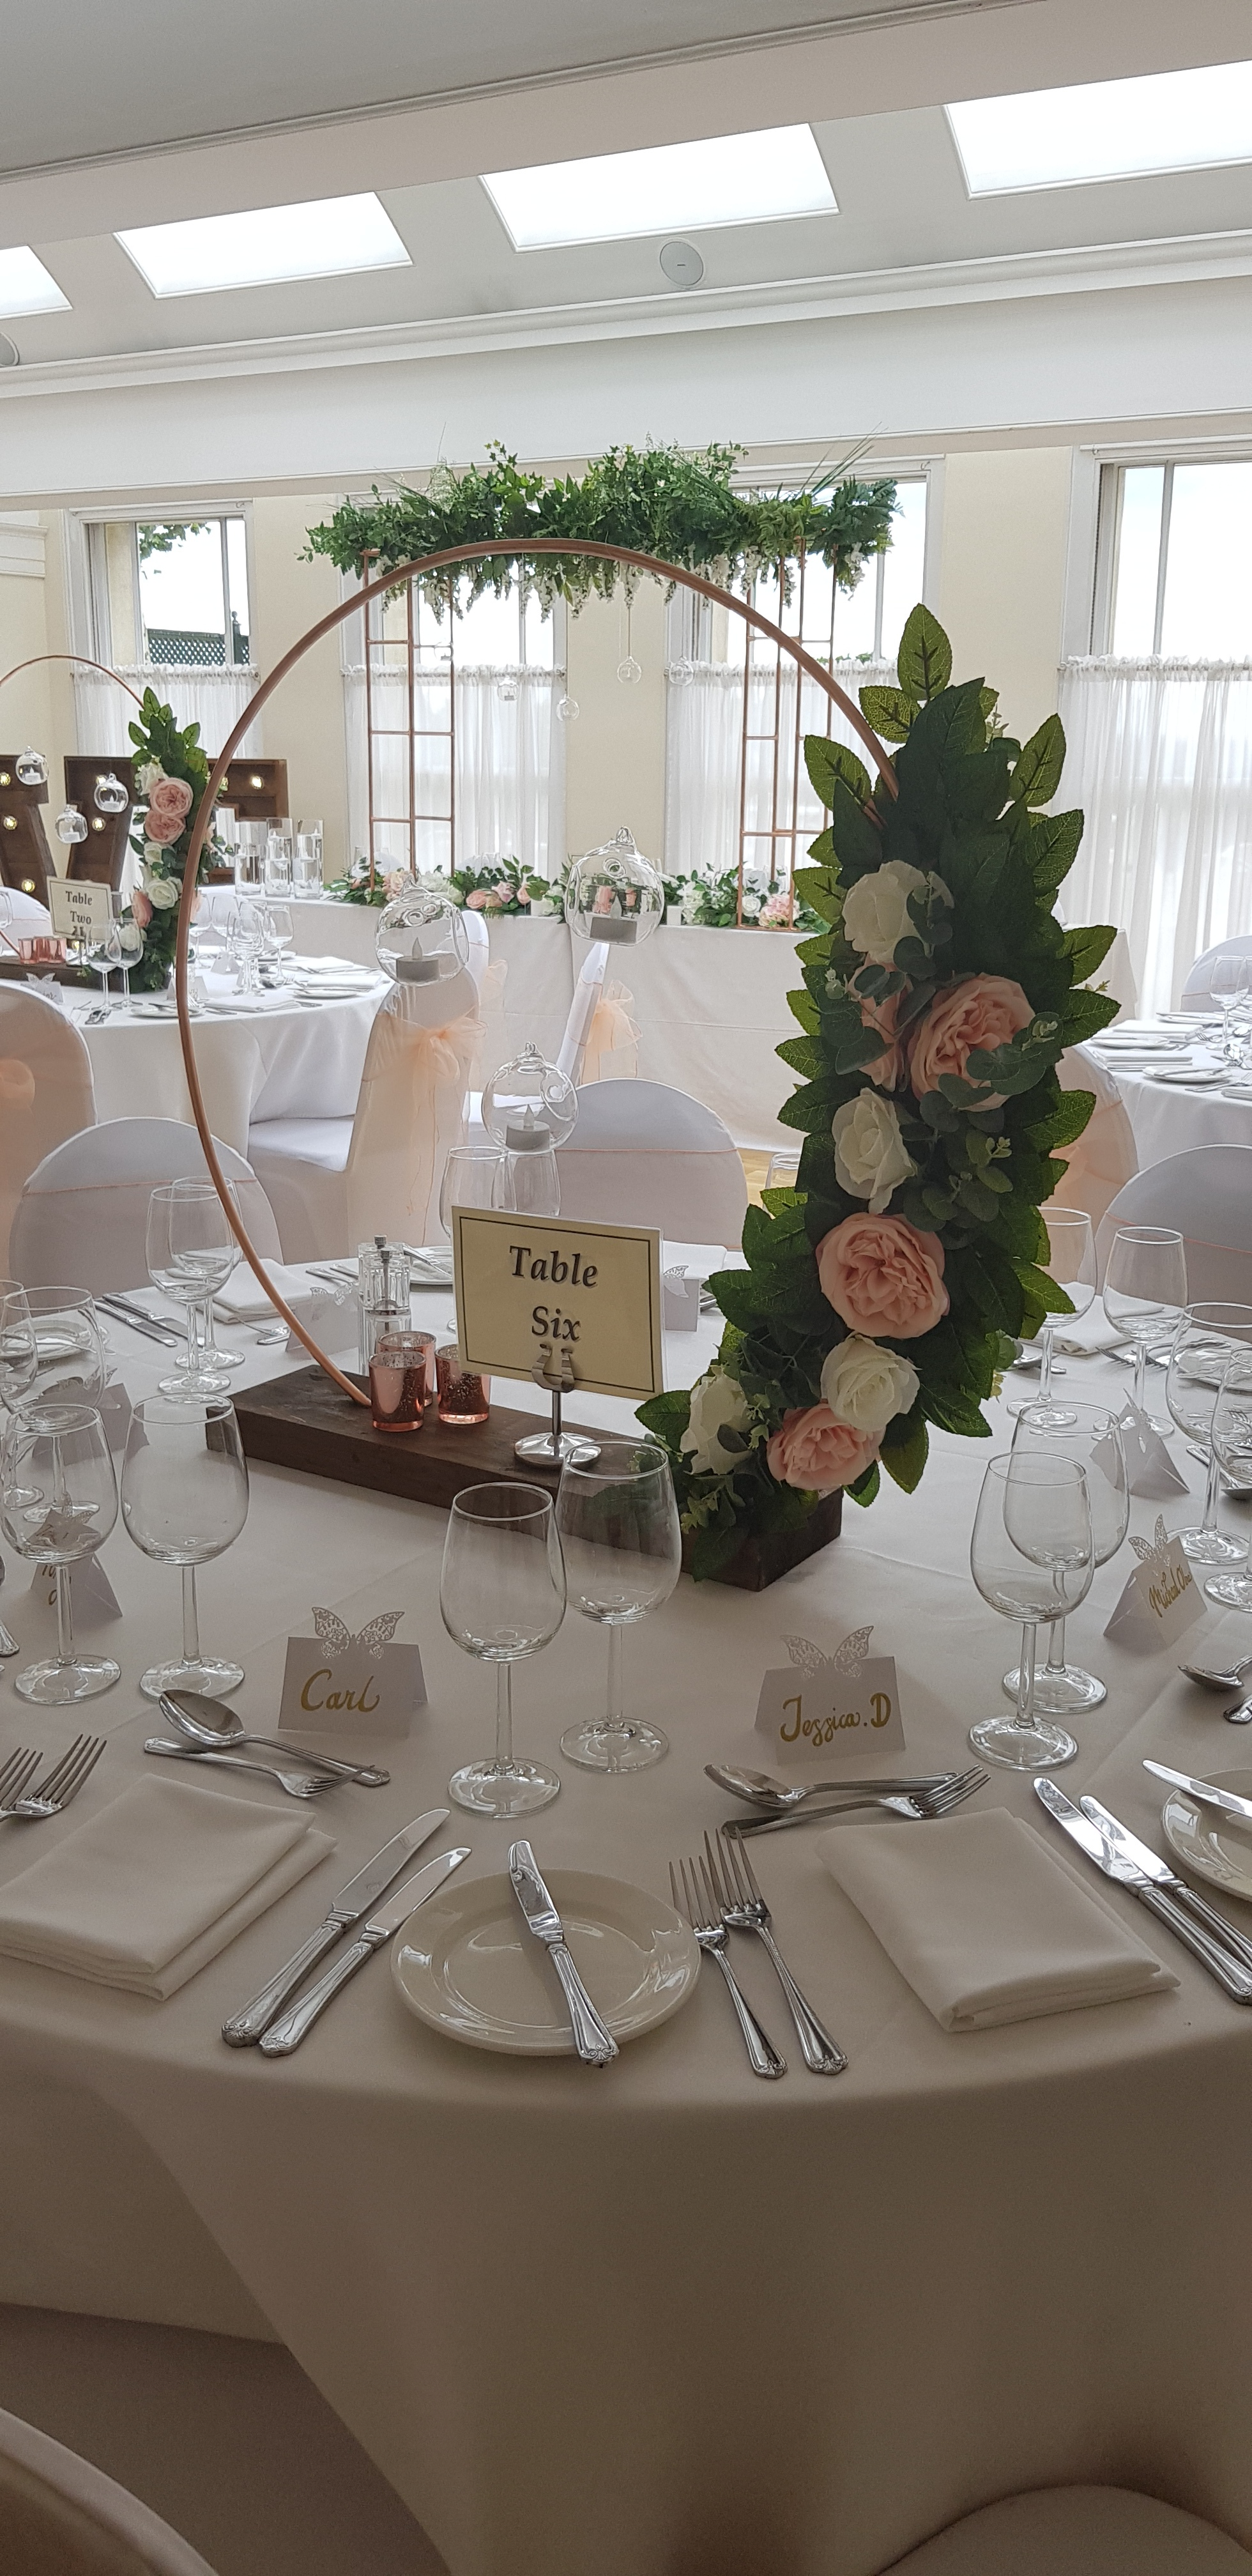 Copper hoop centrepiece - These truly beautiful copper hoop centrepieces are a must have for your 2019/2020 wedding. Dressed with our stunning silk flowers and foliage with hanging LED candlelit baubles.We have a selection of 600mm diameter and larger 800mm diameter hoops available.